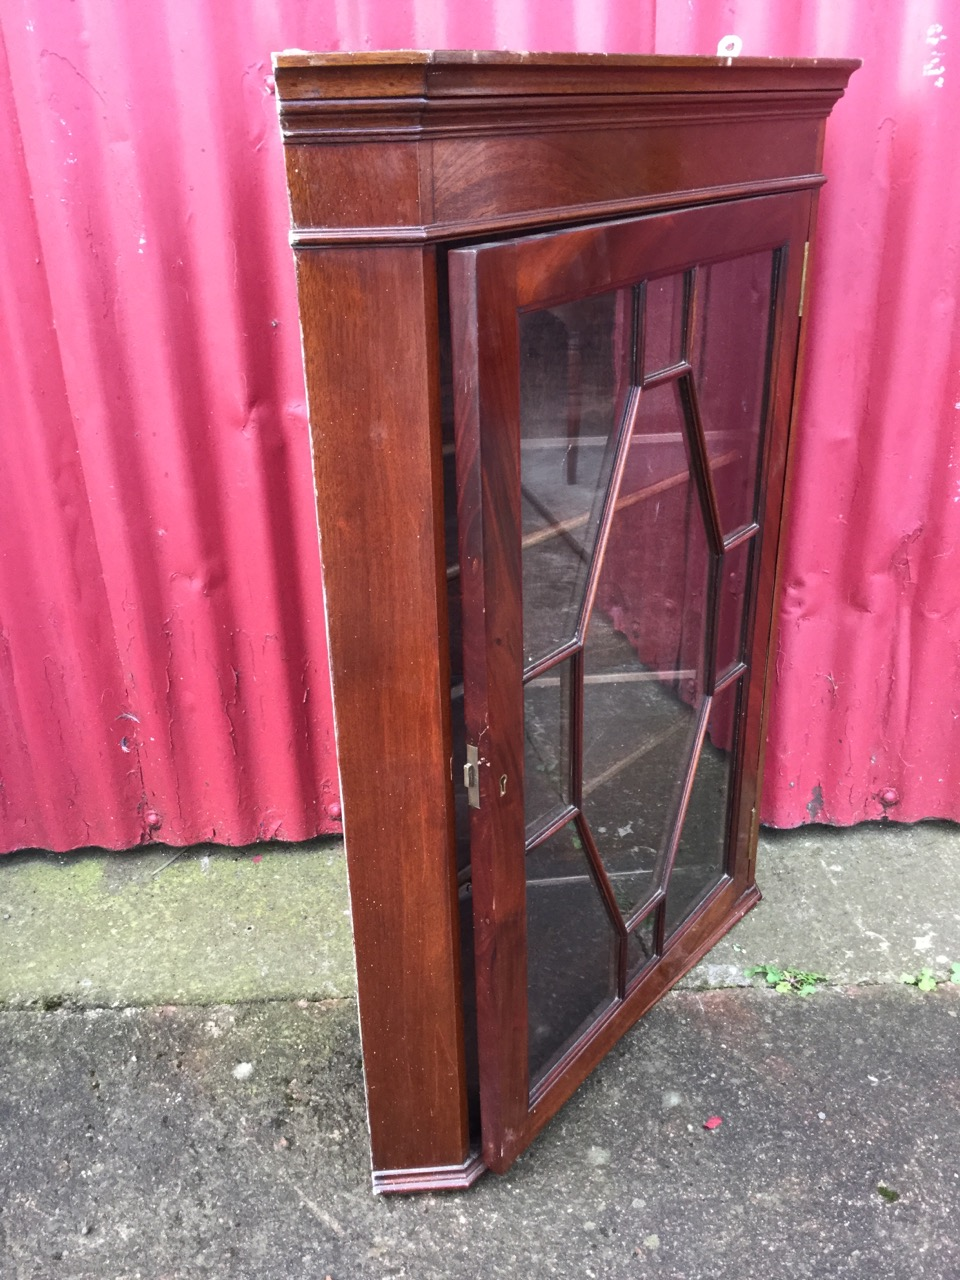 Lot 44 - A Victorian mahogany corner cabinet with moulded cornice above astragal glazed door framed by canted